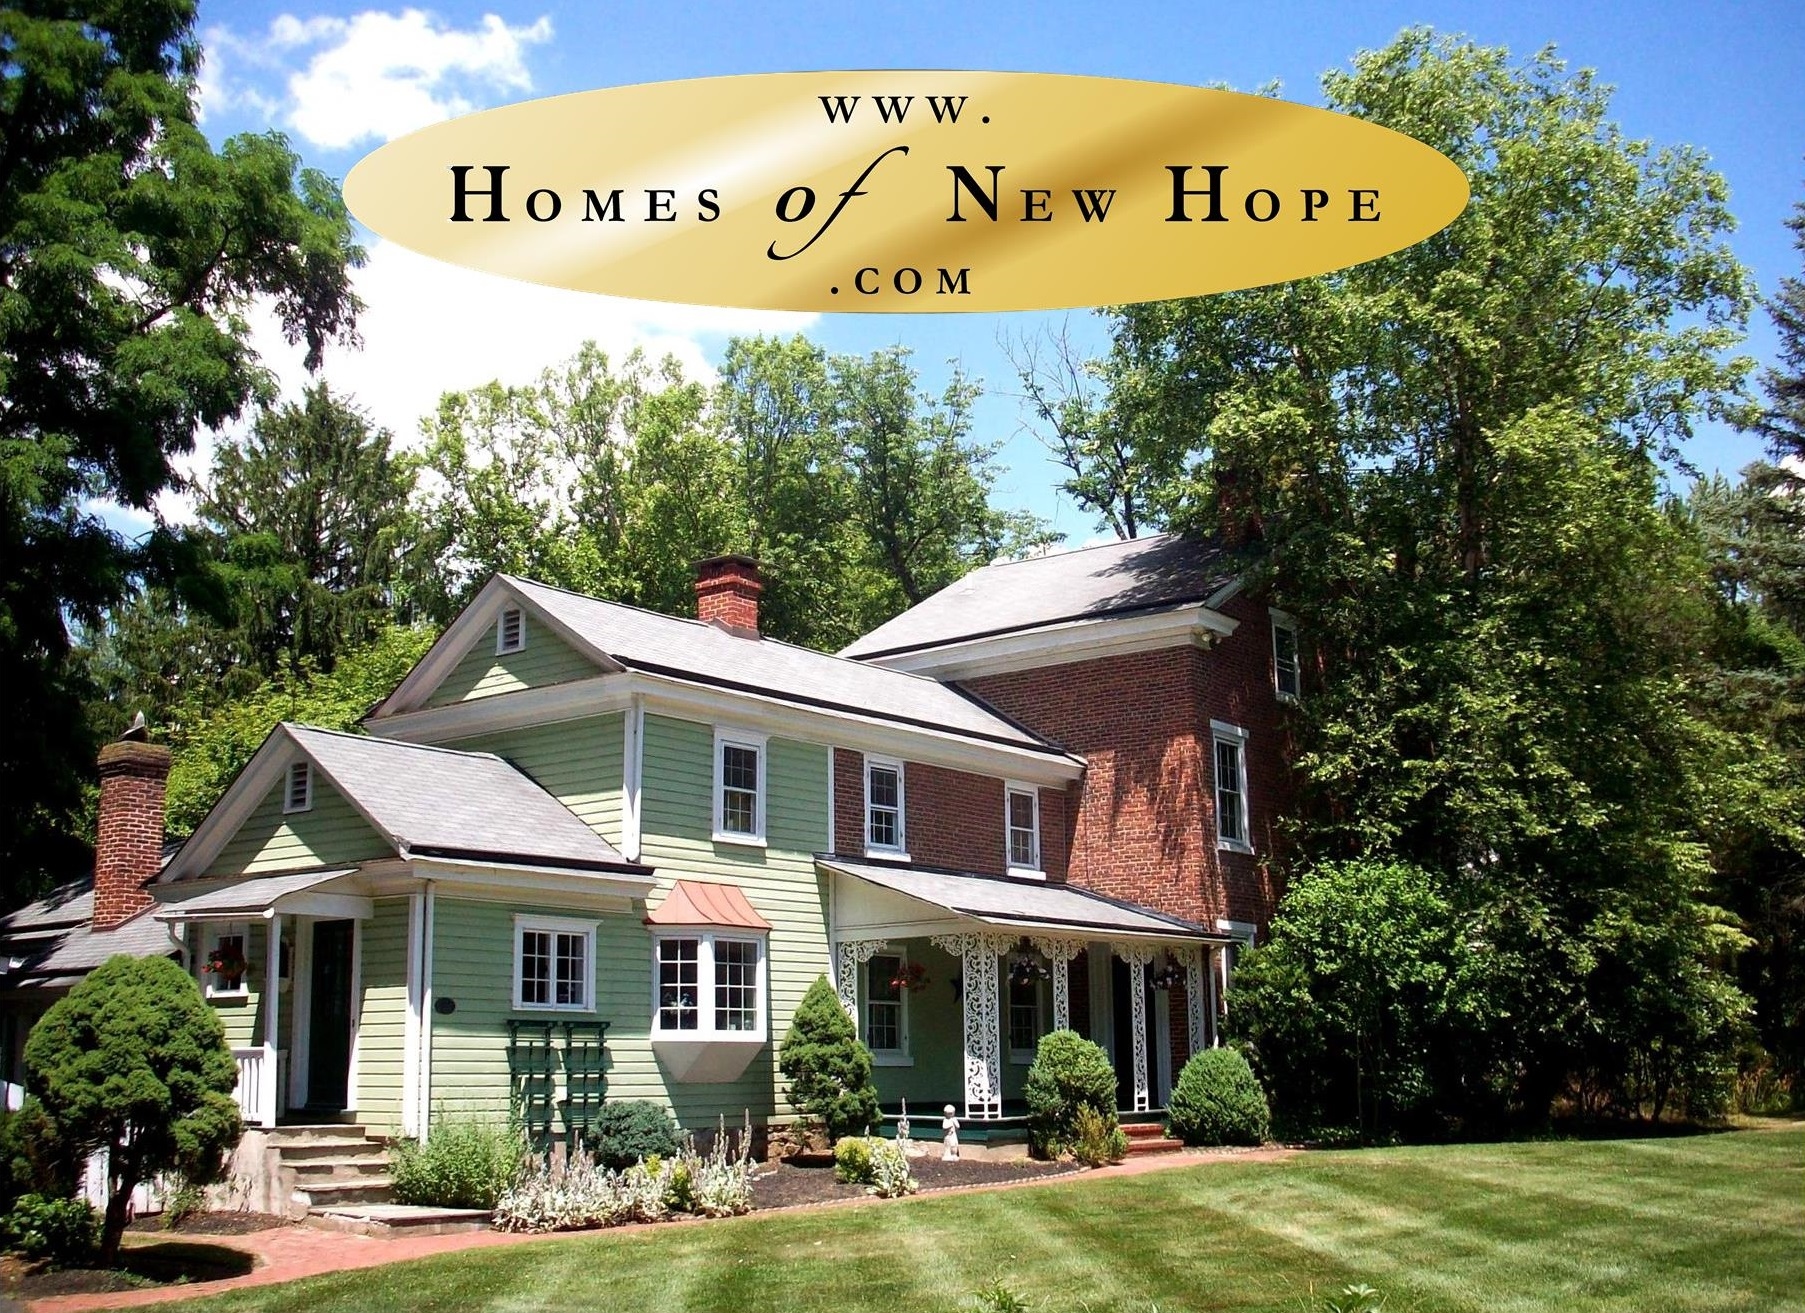 Homes of New Hope | www.HomesOfNewHope.com | Peter Naylor House | Weidel Real Estate | #WeidelRealEstate | #NewHopeRealtors